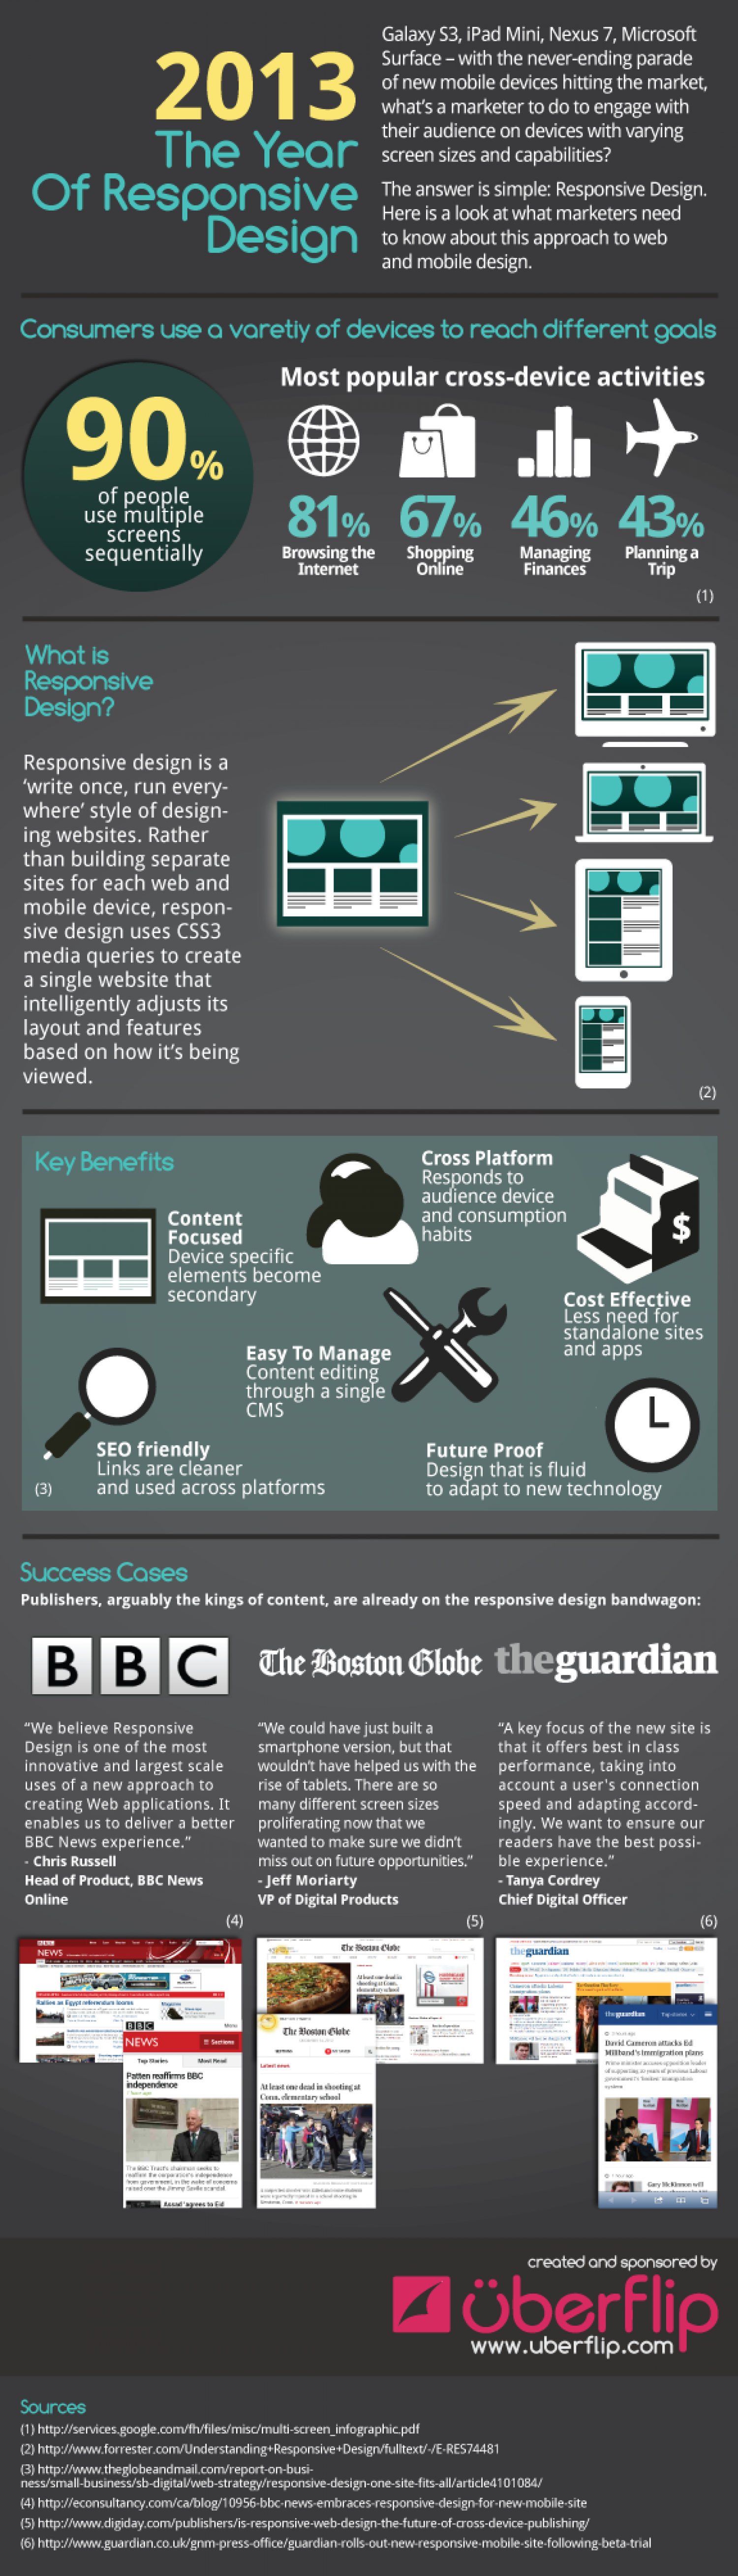 INFOGRAPHIC: 2013 The Year of Responsive Design Infographic